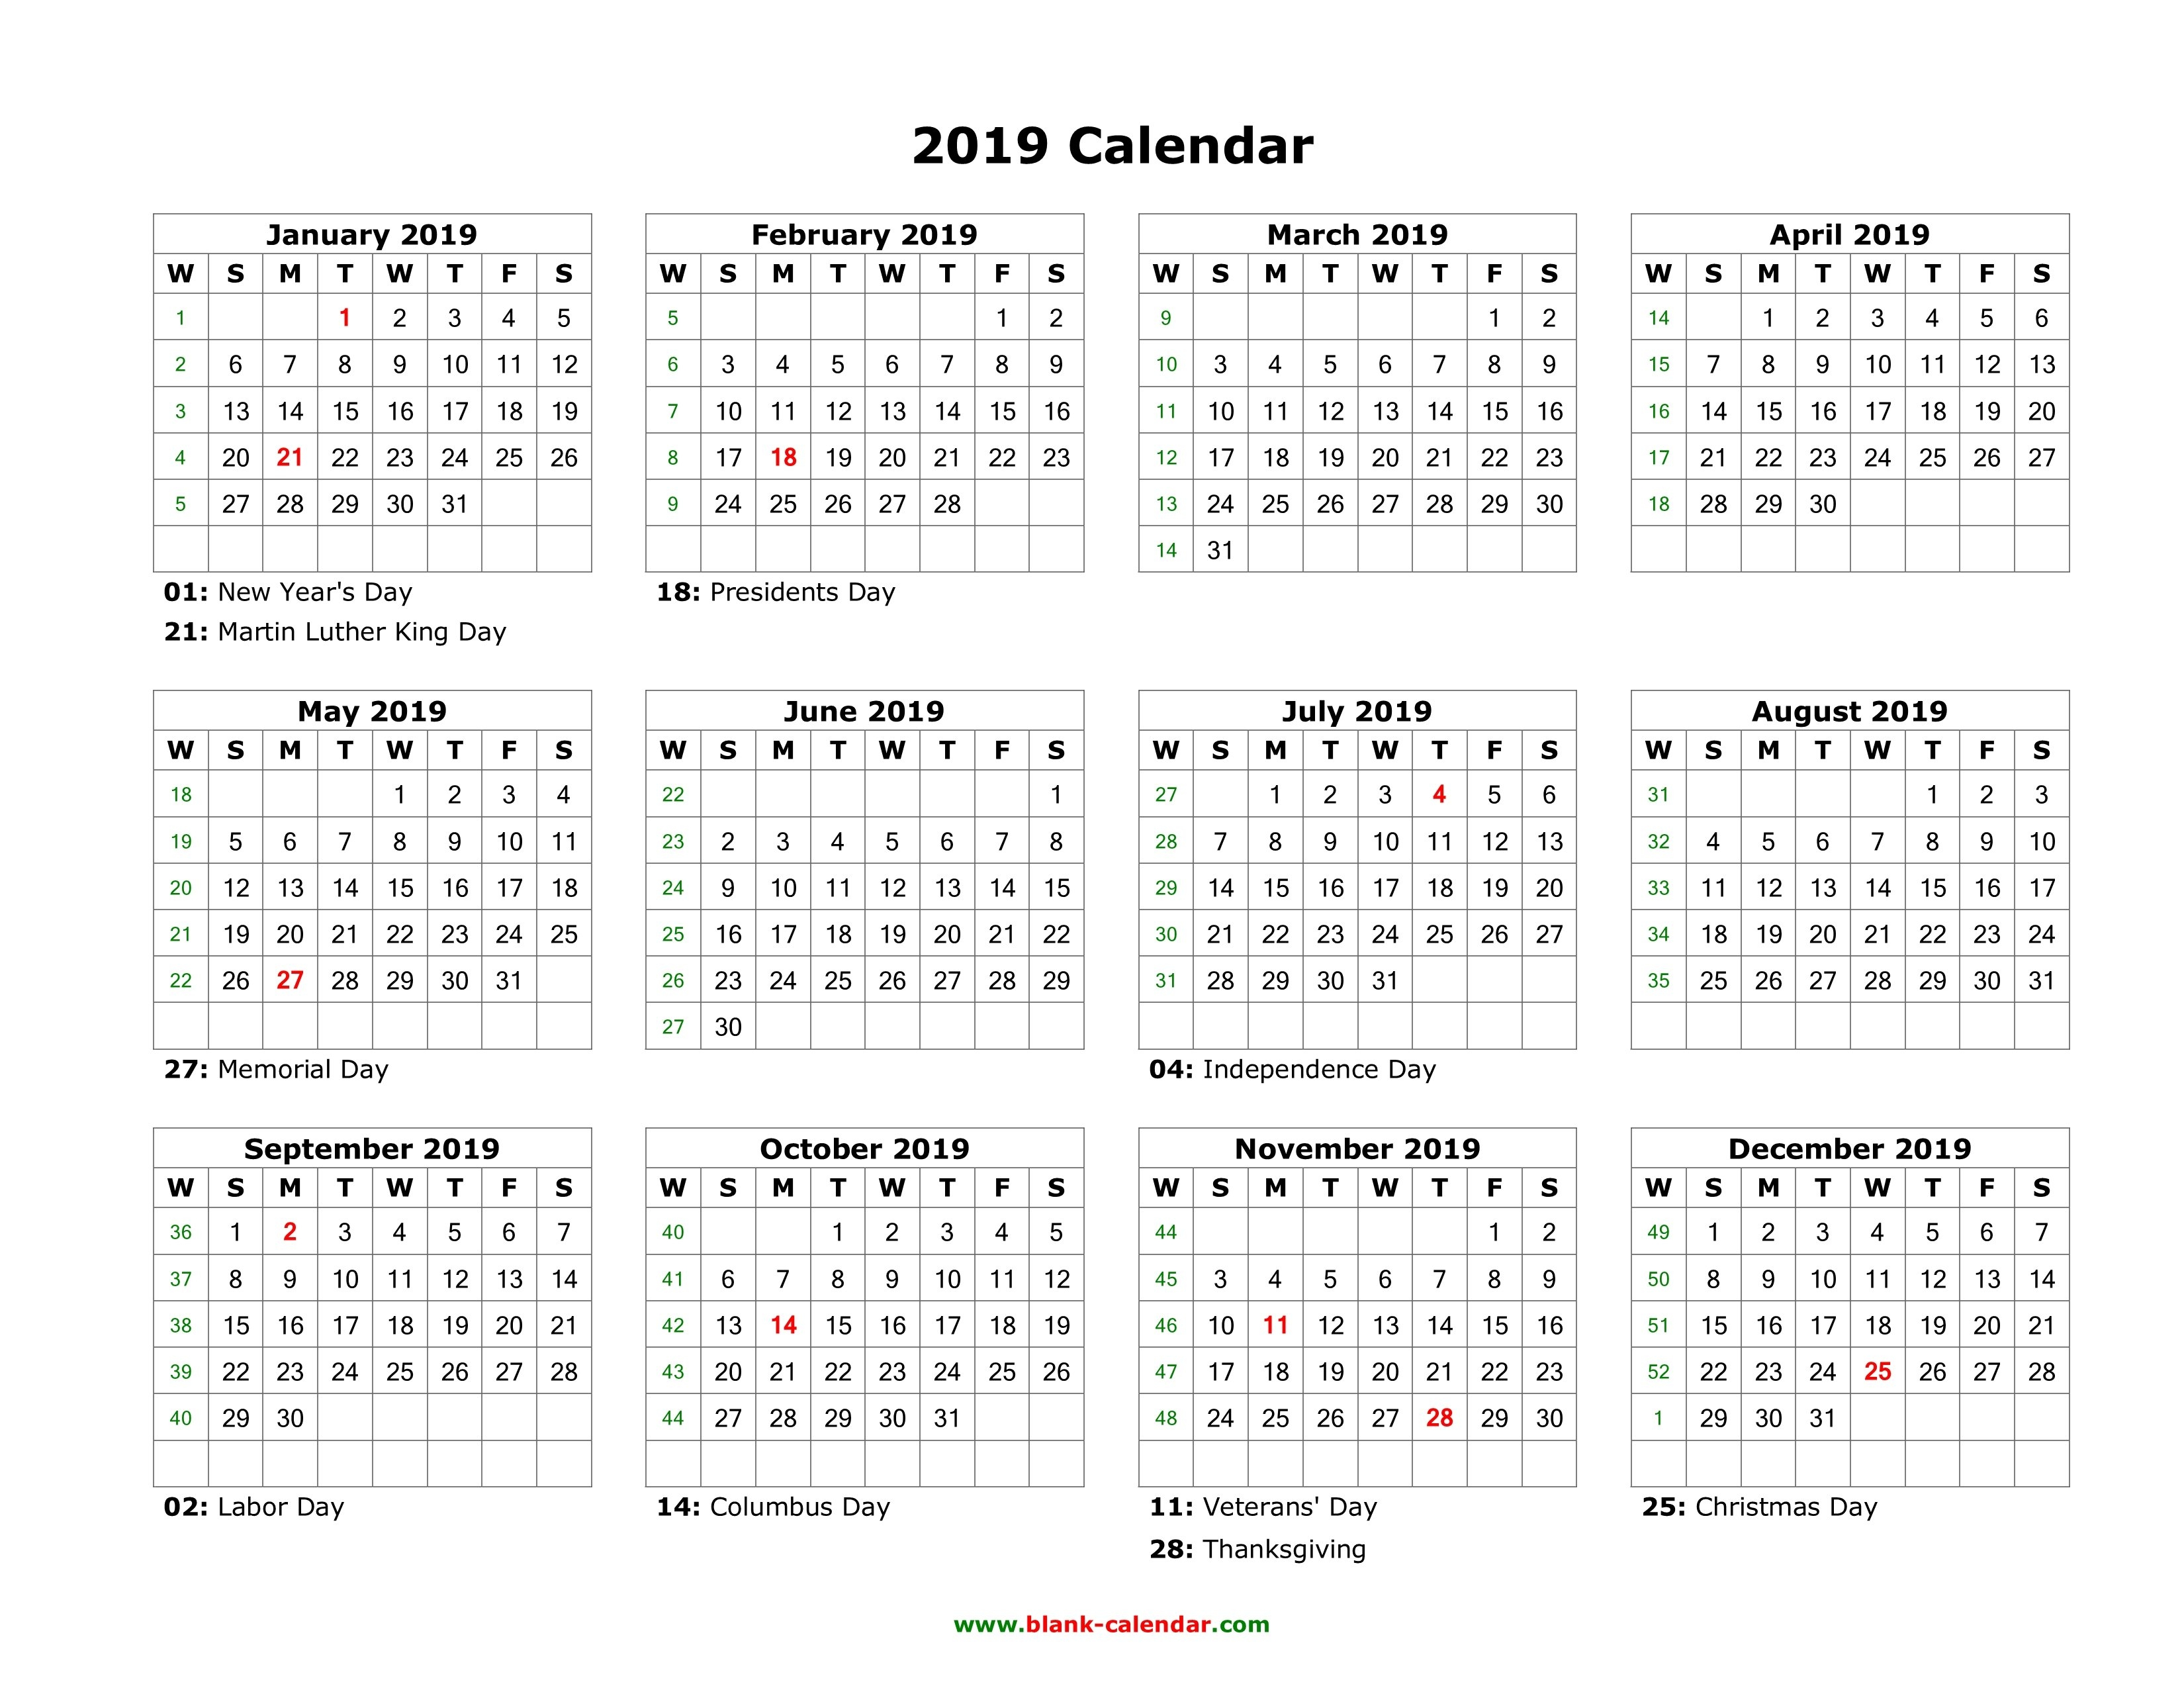 Download Blank Calendar 2019 With Us Holidays (12 Months On One Page 1 Page Yearly Calendar 2019